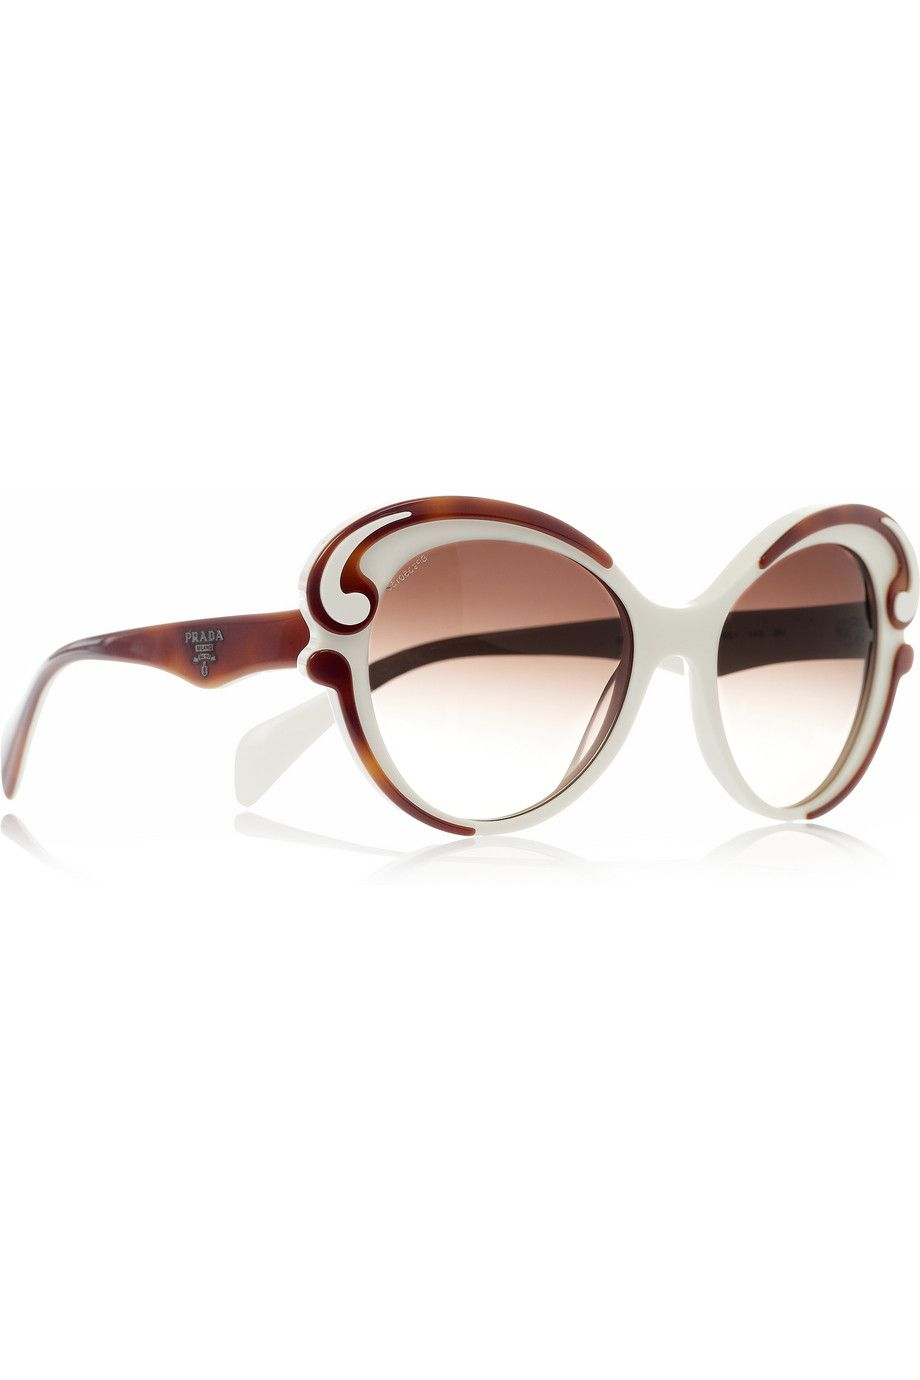 5a47db968941 ... italy prada white and tortoiseshell cat eye frame sunglasses from the minimal  baroque collection cateyeglasses sunnies